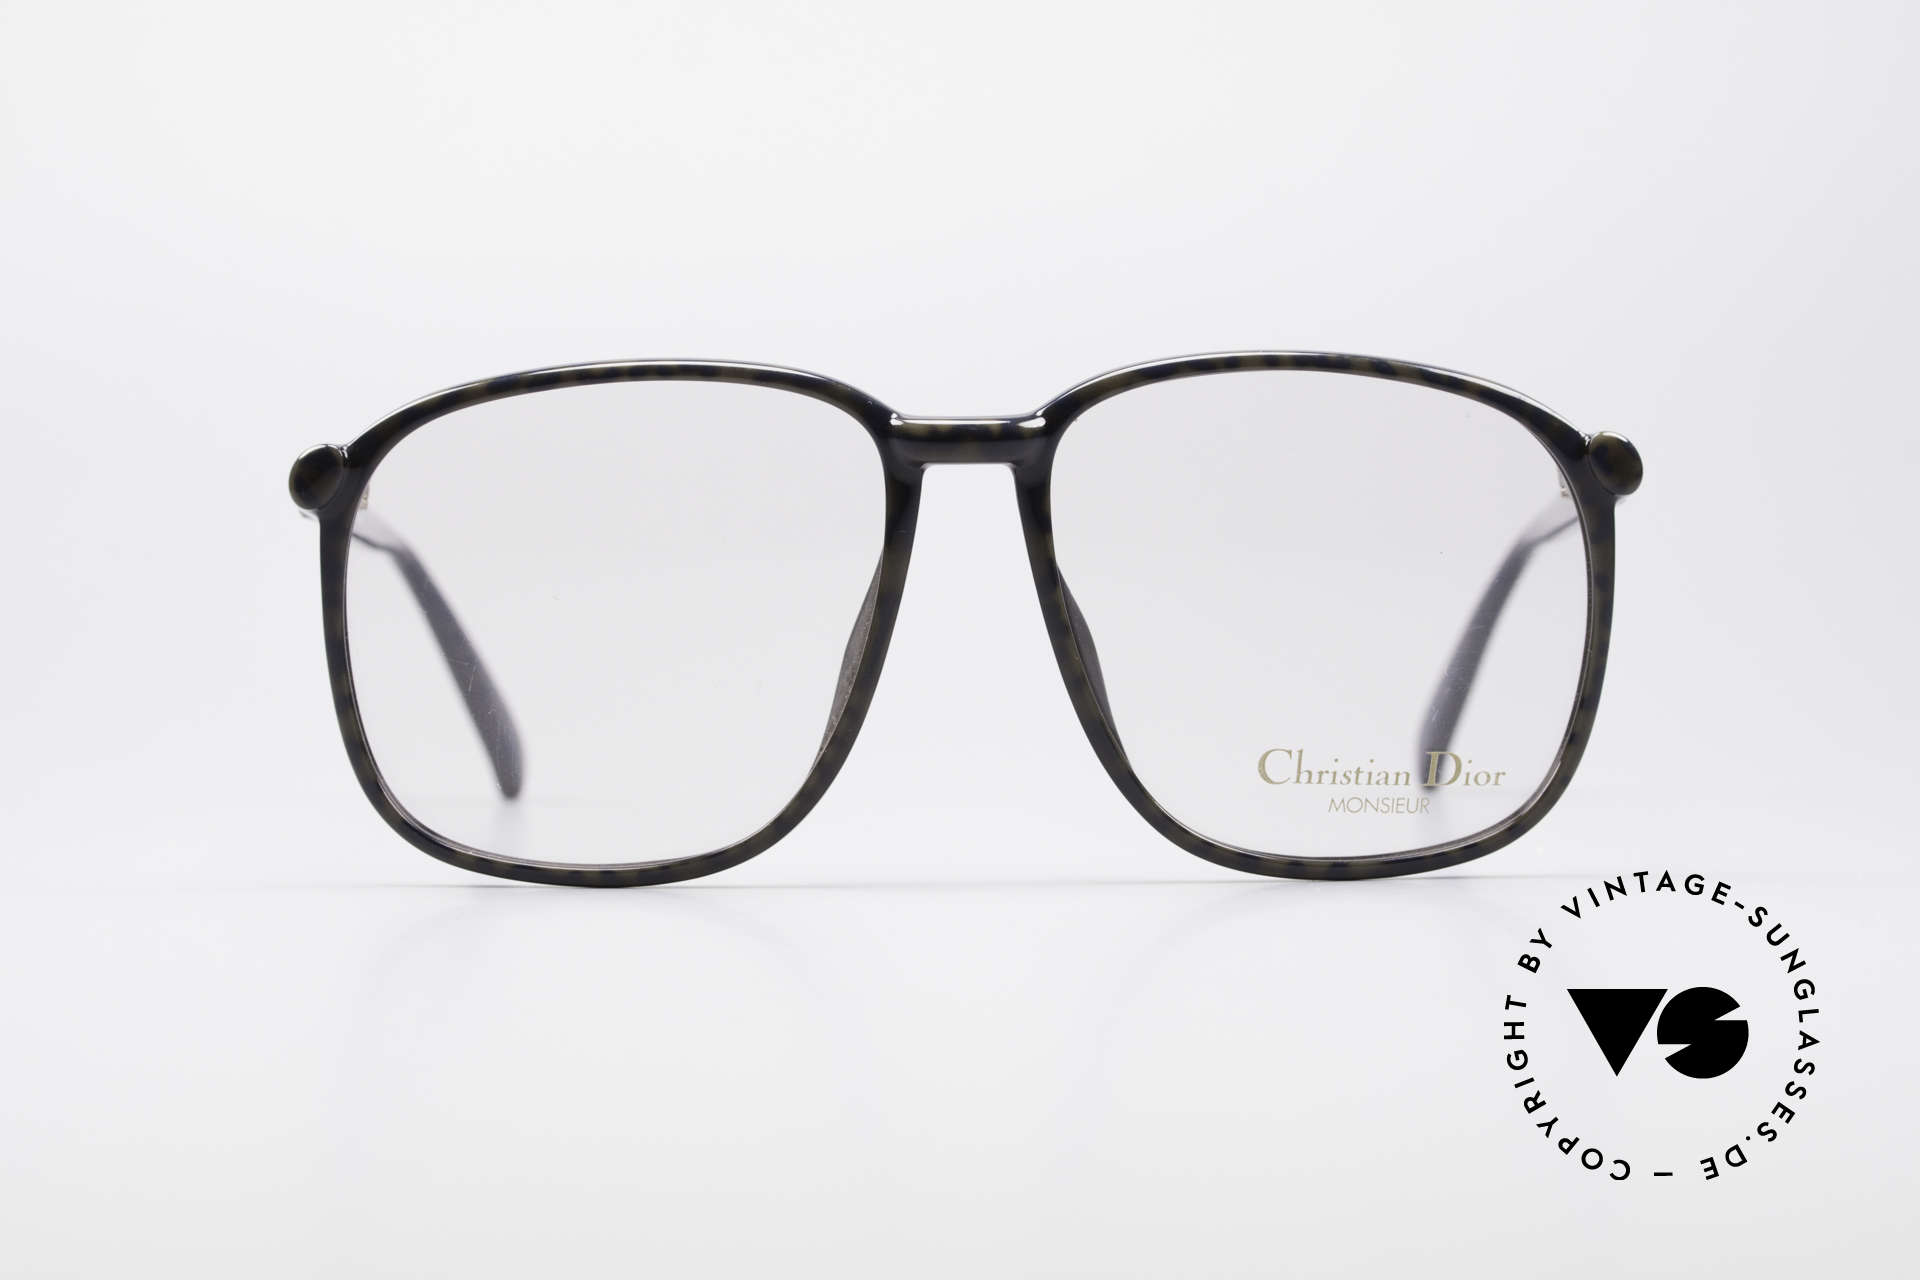 Christian Dior 2341 80's Optyl Monsieur Glasses, made of incredible OPTYL material (timeless quality), Made for Men